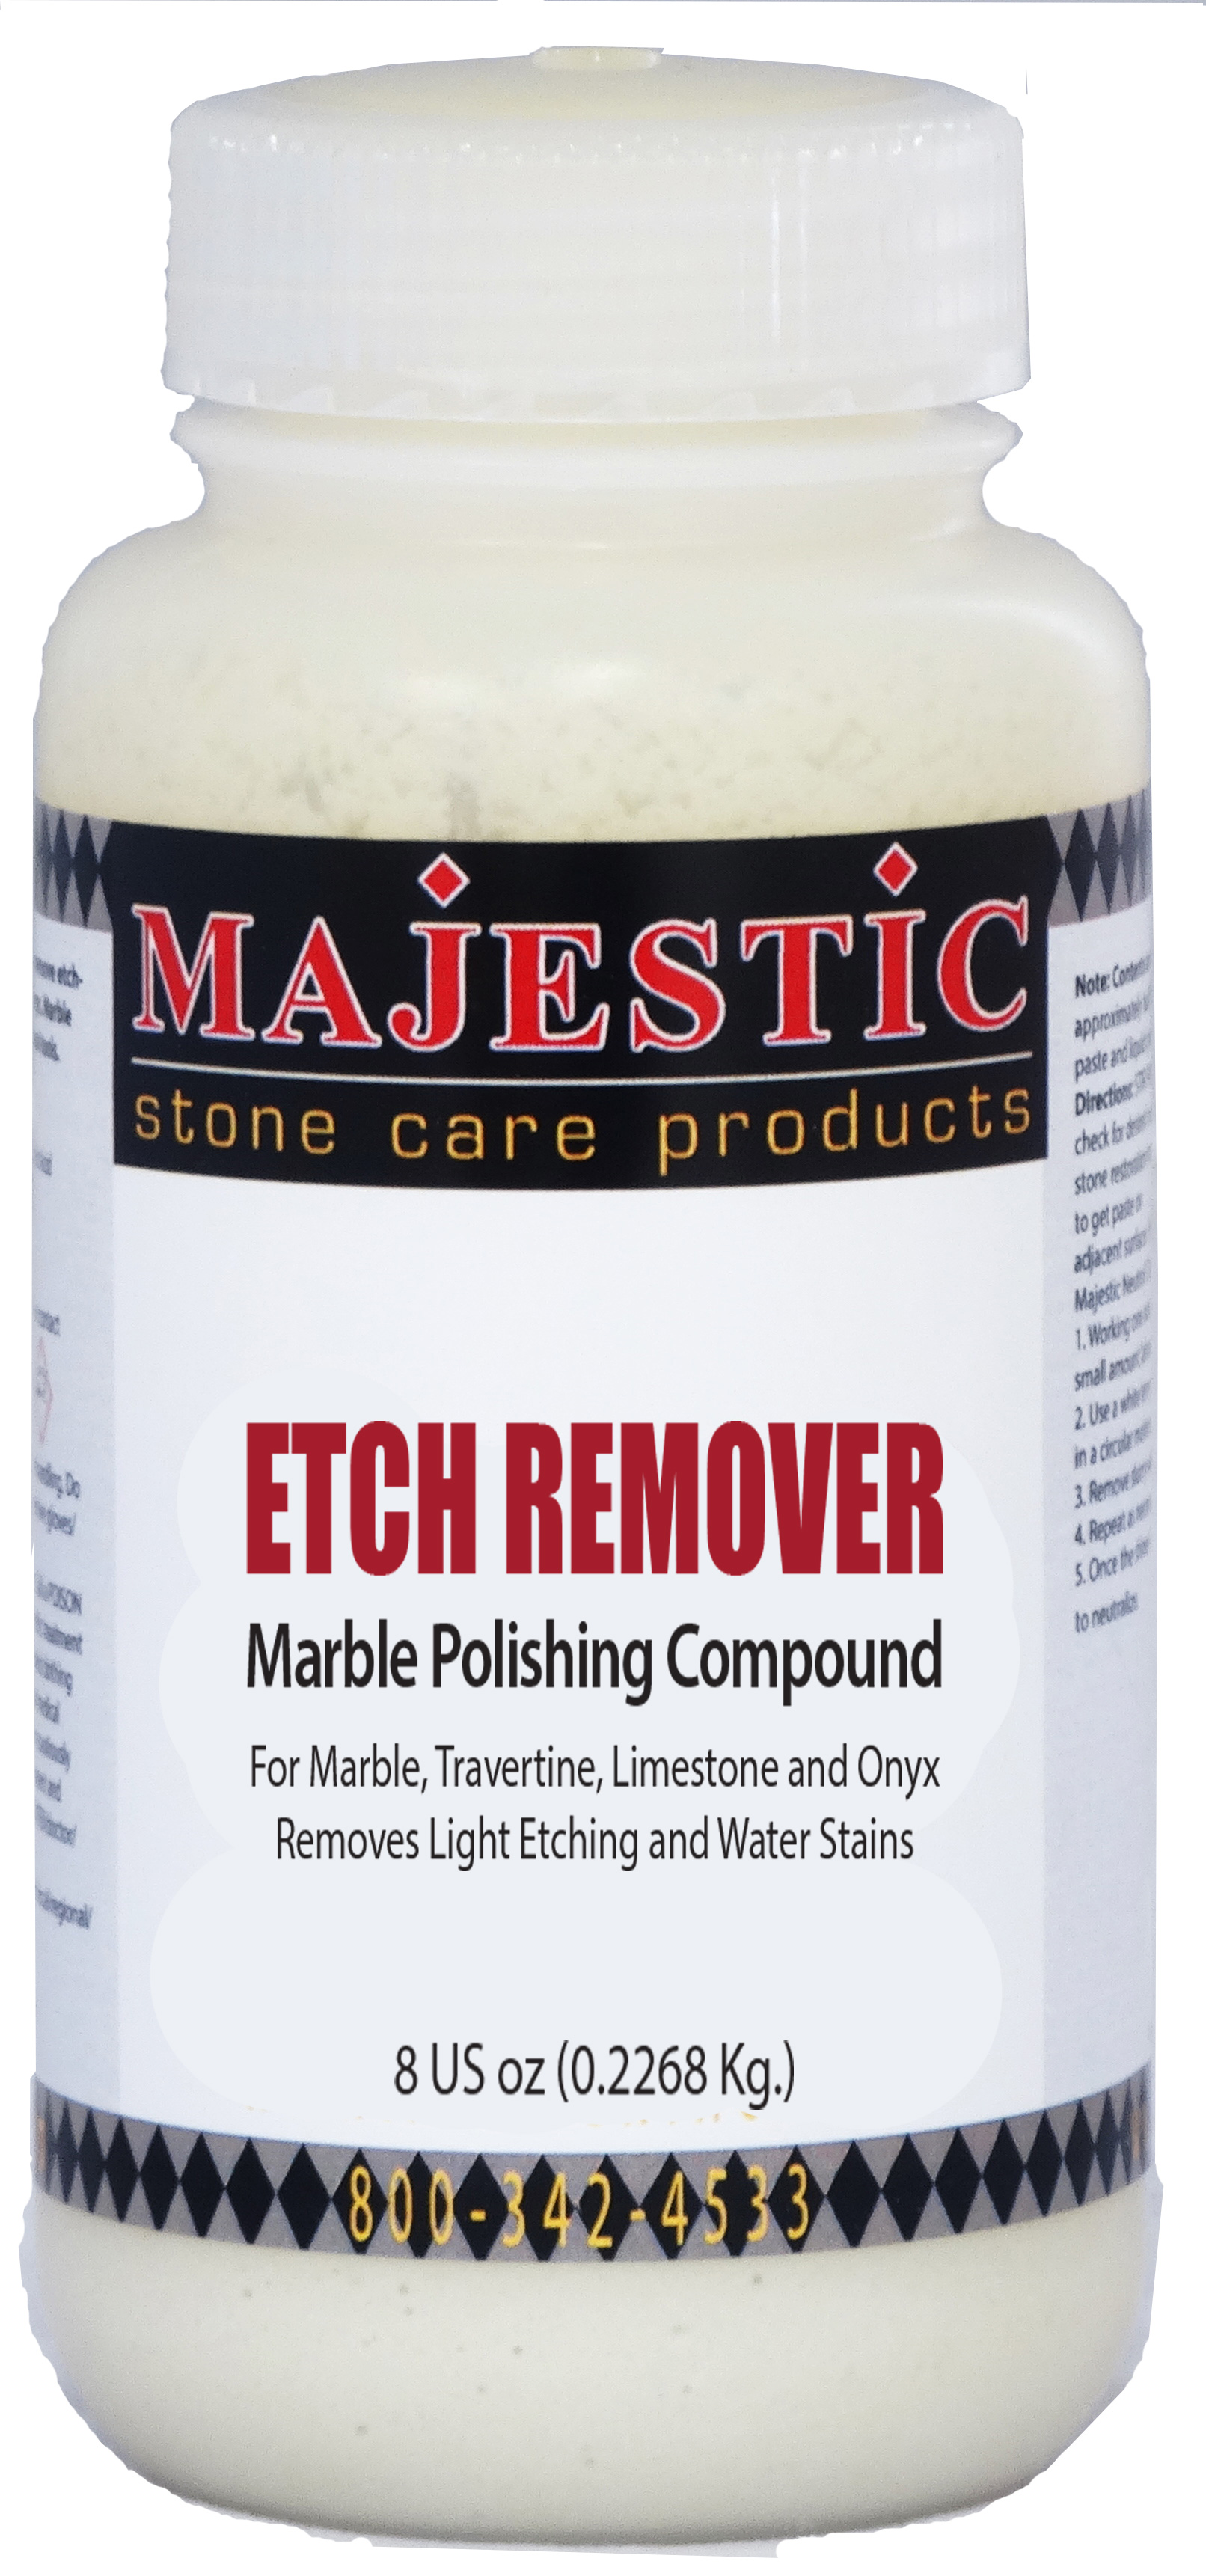 Etch Remover Marble Polishing Compound mb11, polish, stone, etch, etching, remover, removal, polished, marble, travertine, limestone, onyx, compound, scratches, paste, water, rings, marks, care, products